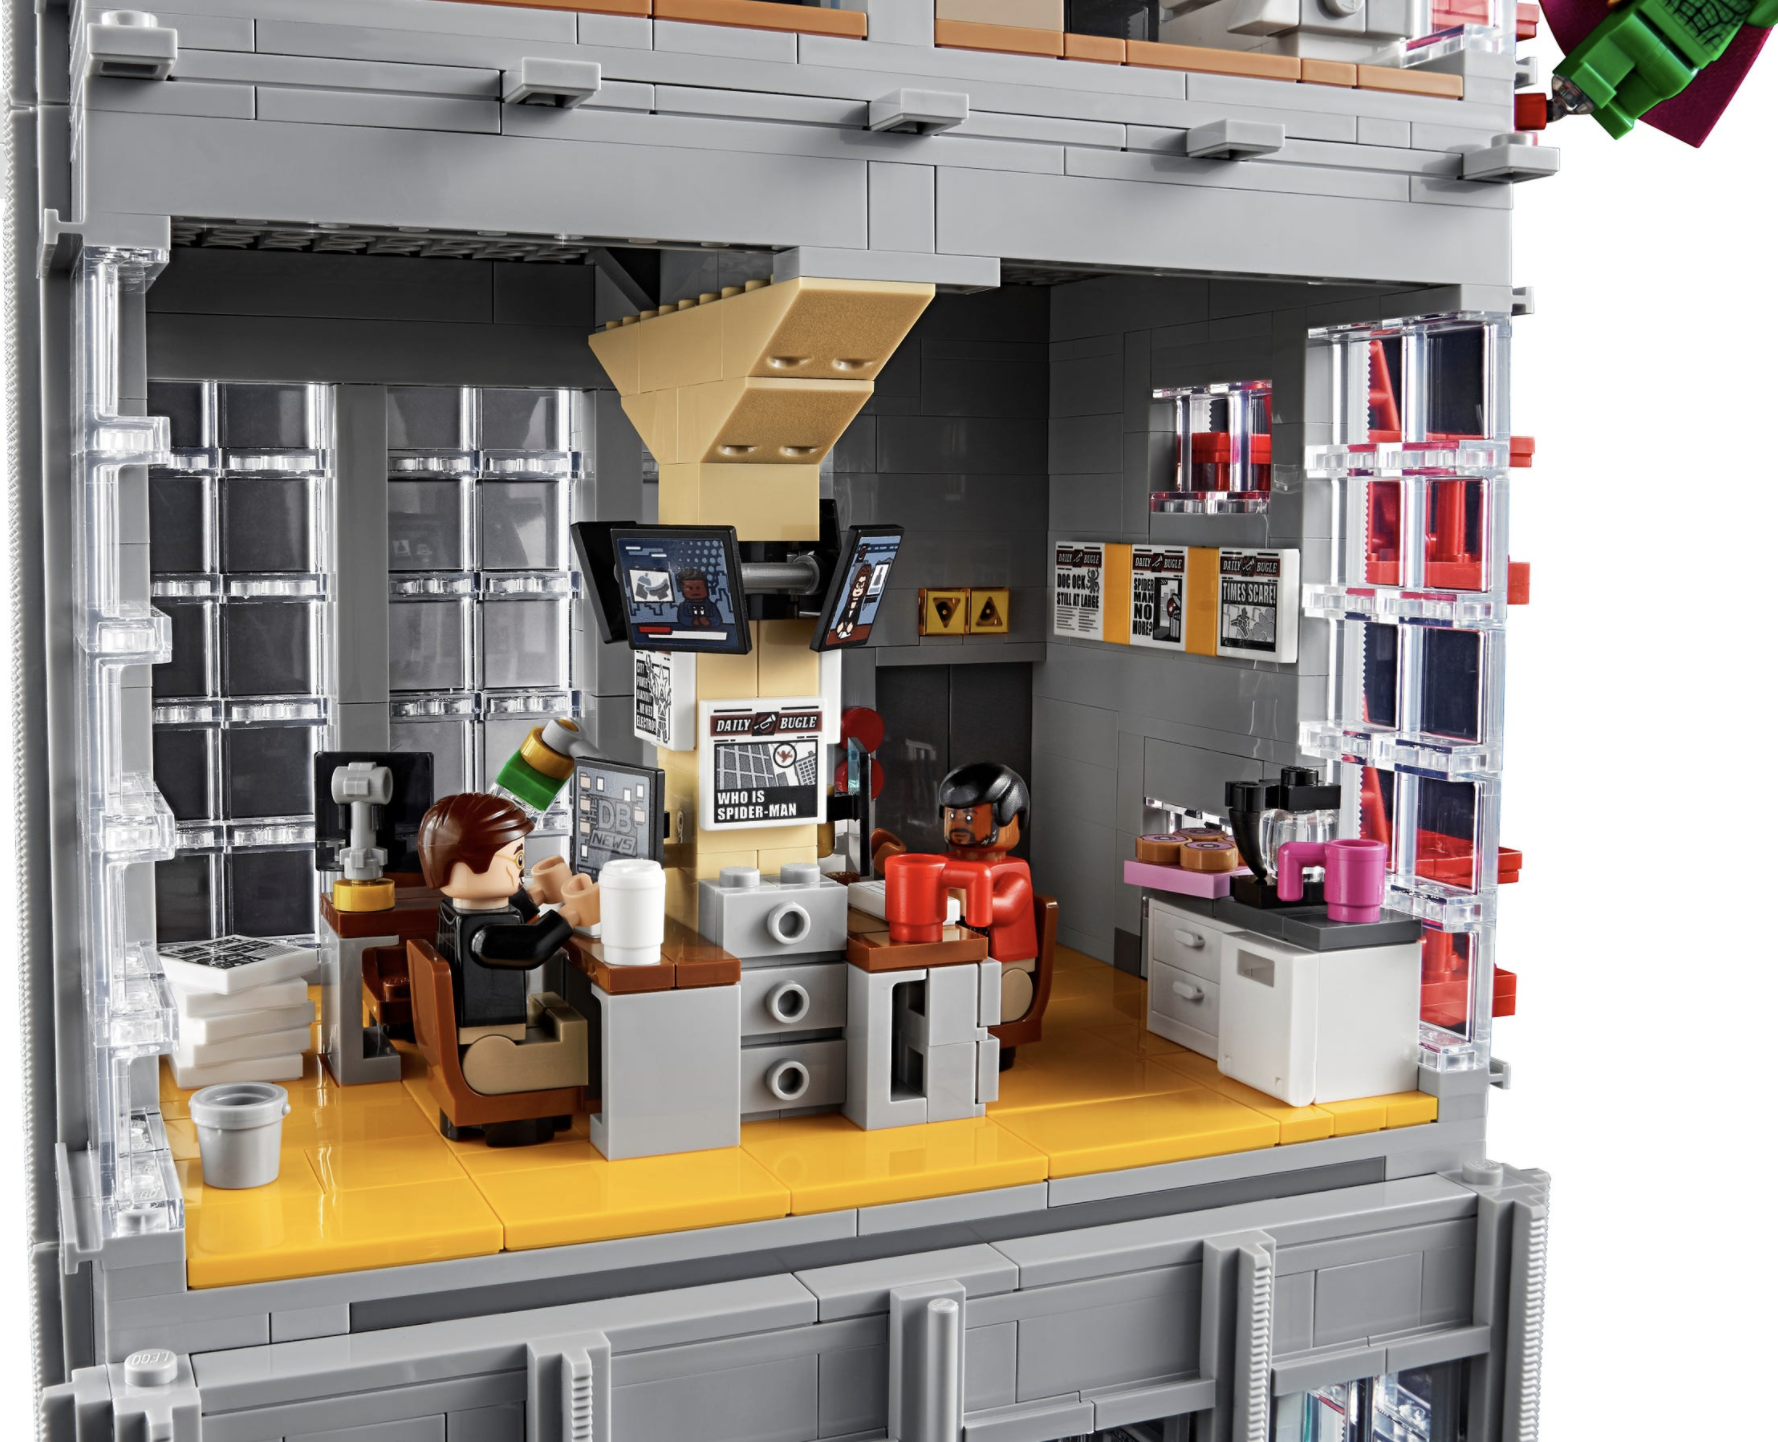 Daily Bugle Minifigures - Office Room